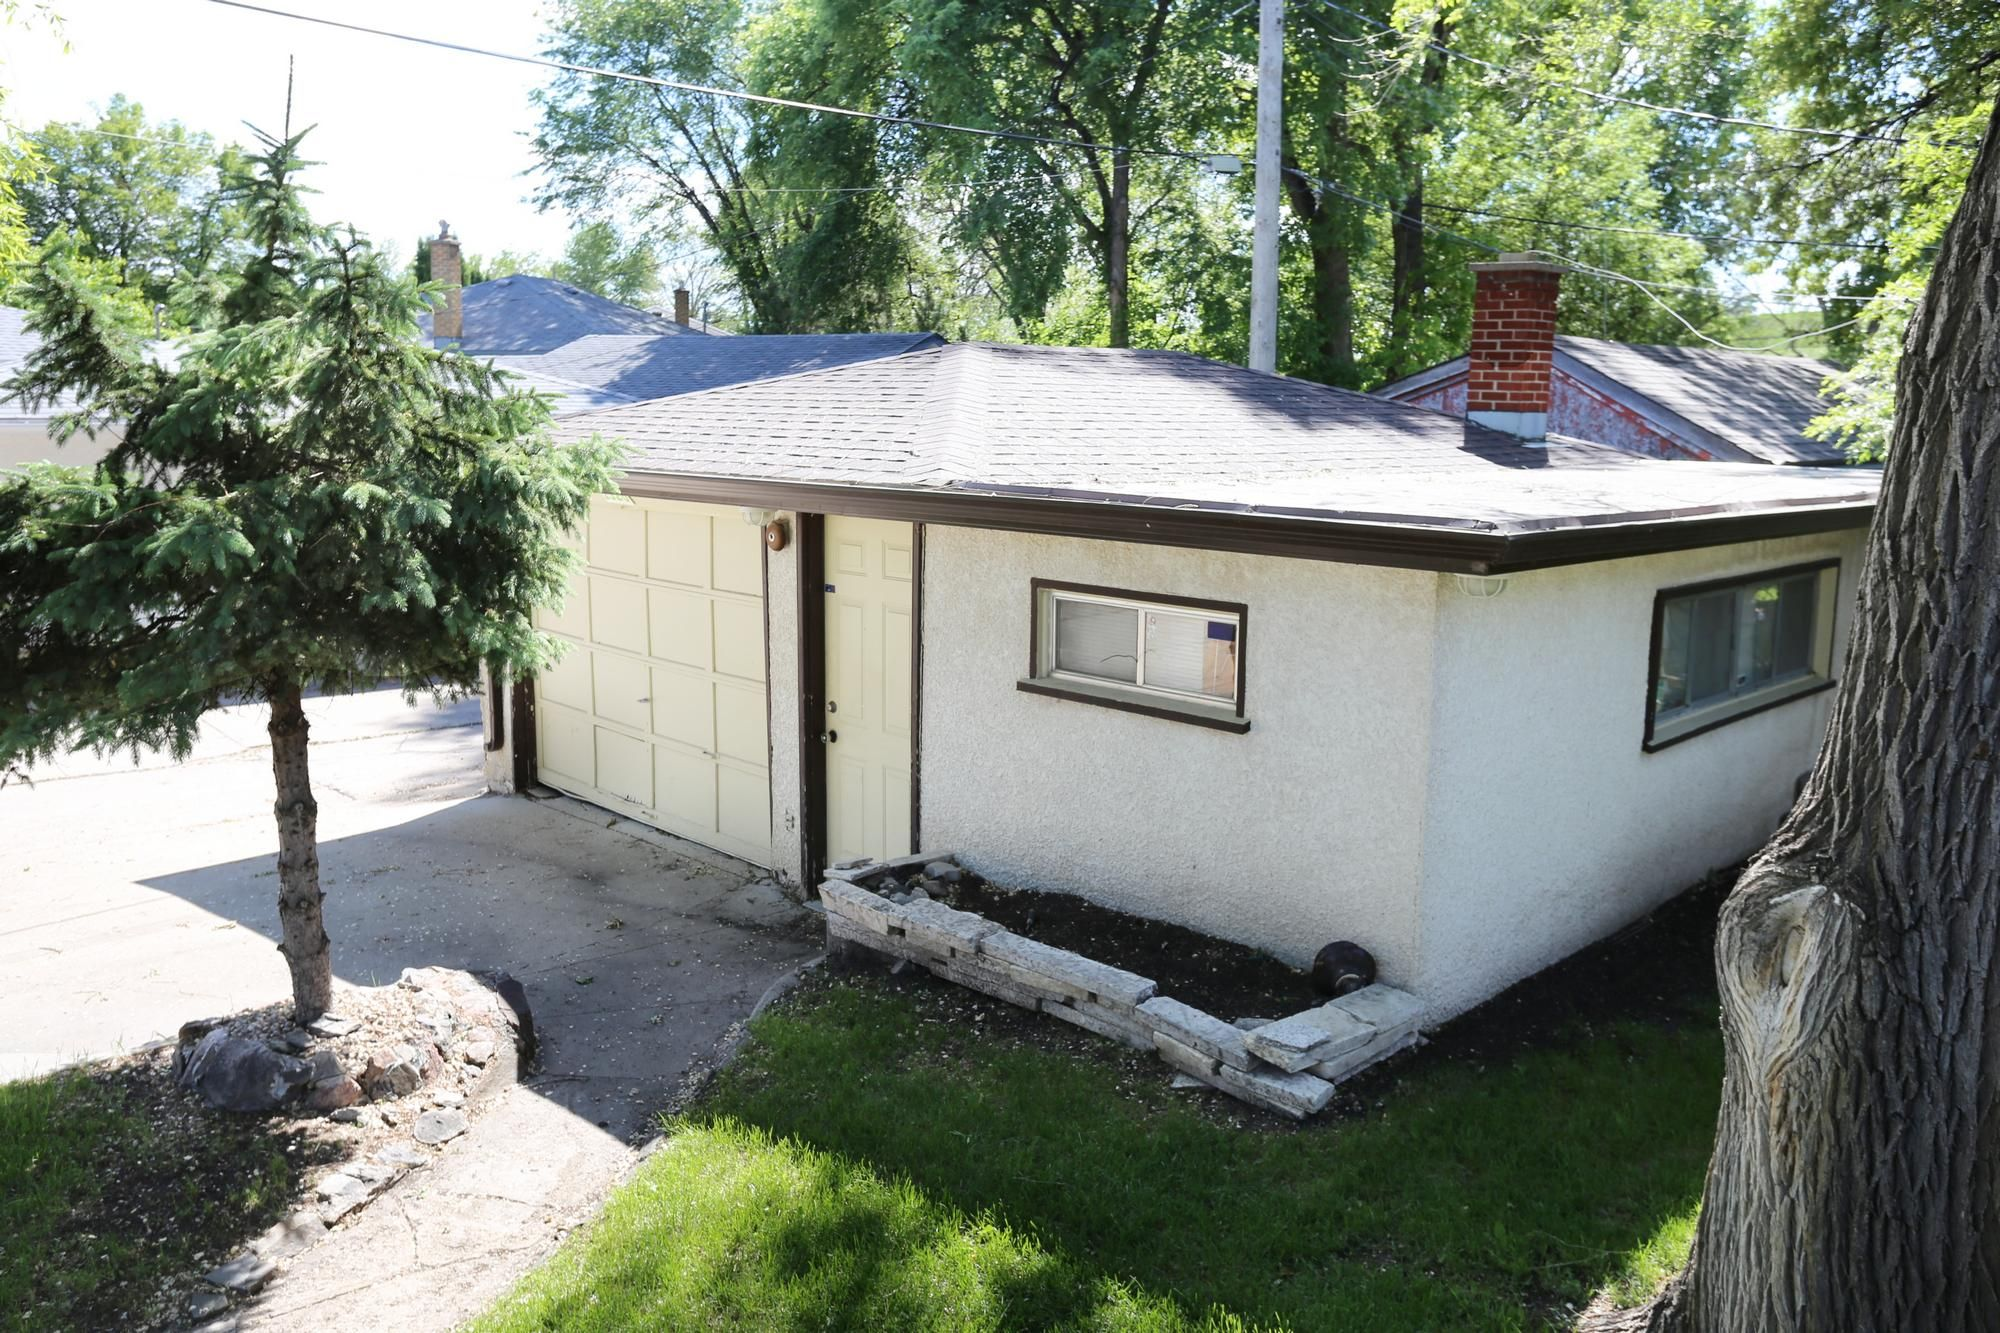 Photo 32: Photos: 1320 Valour Road in Winnipeg: West End Single Family Detached for sale (5C)  : MLS®# 1816744